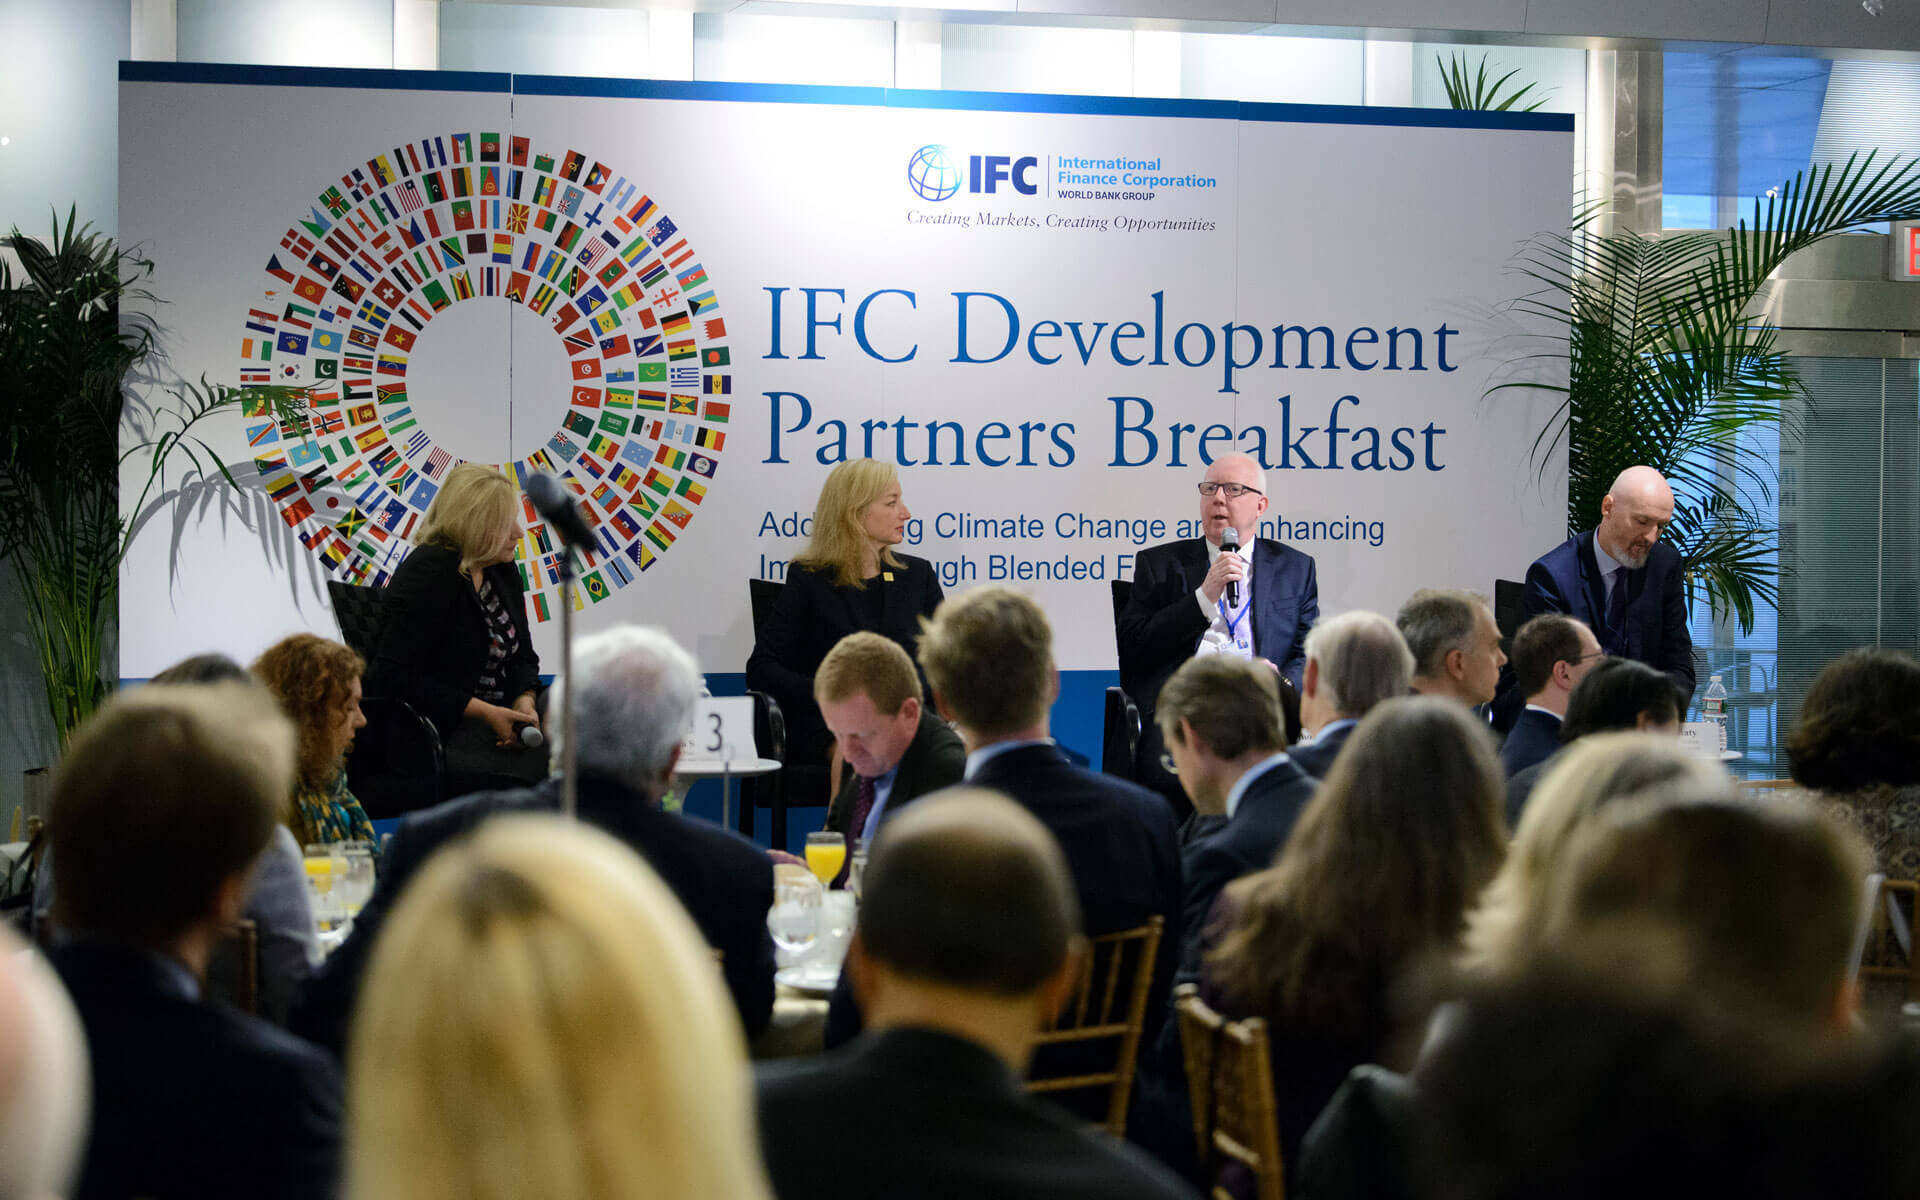 IFC-Development-Partners-Breakfast_242_F